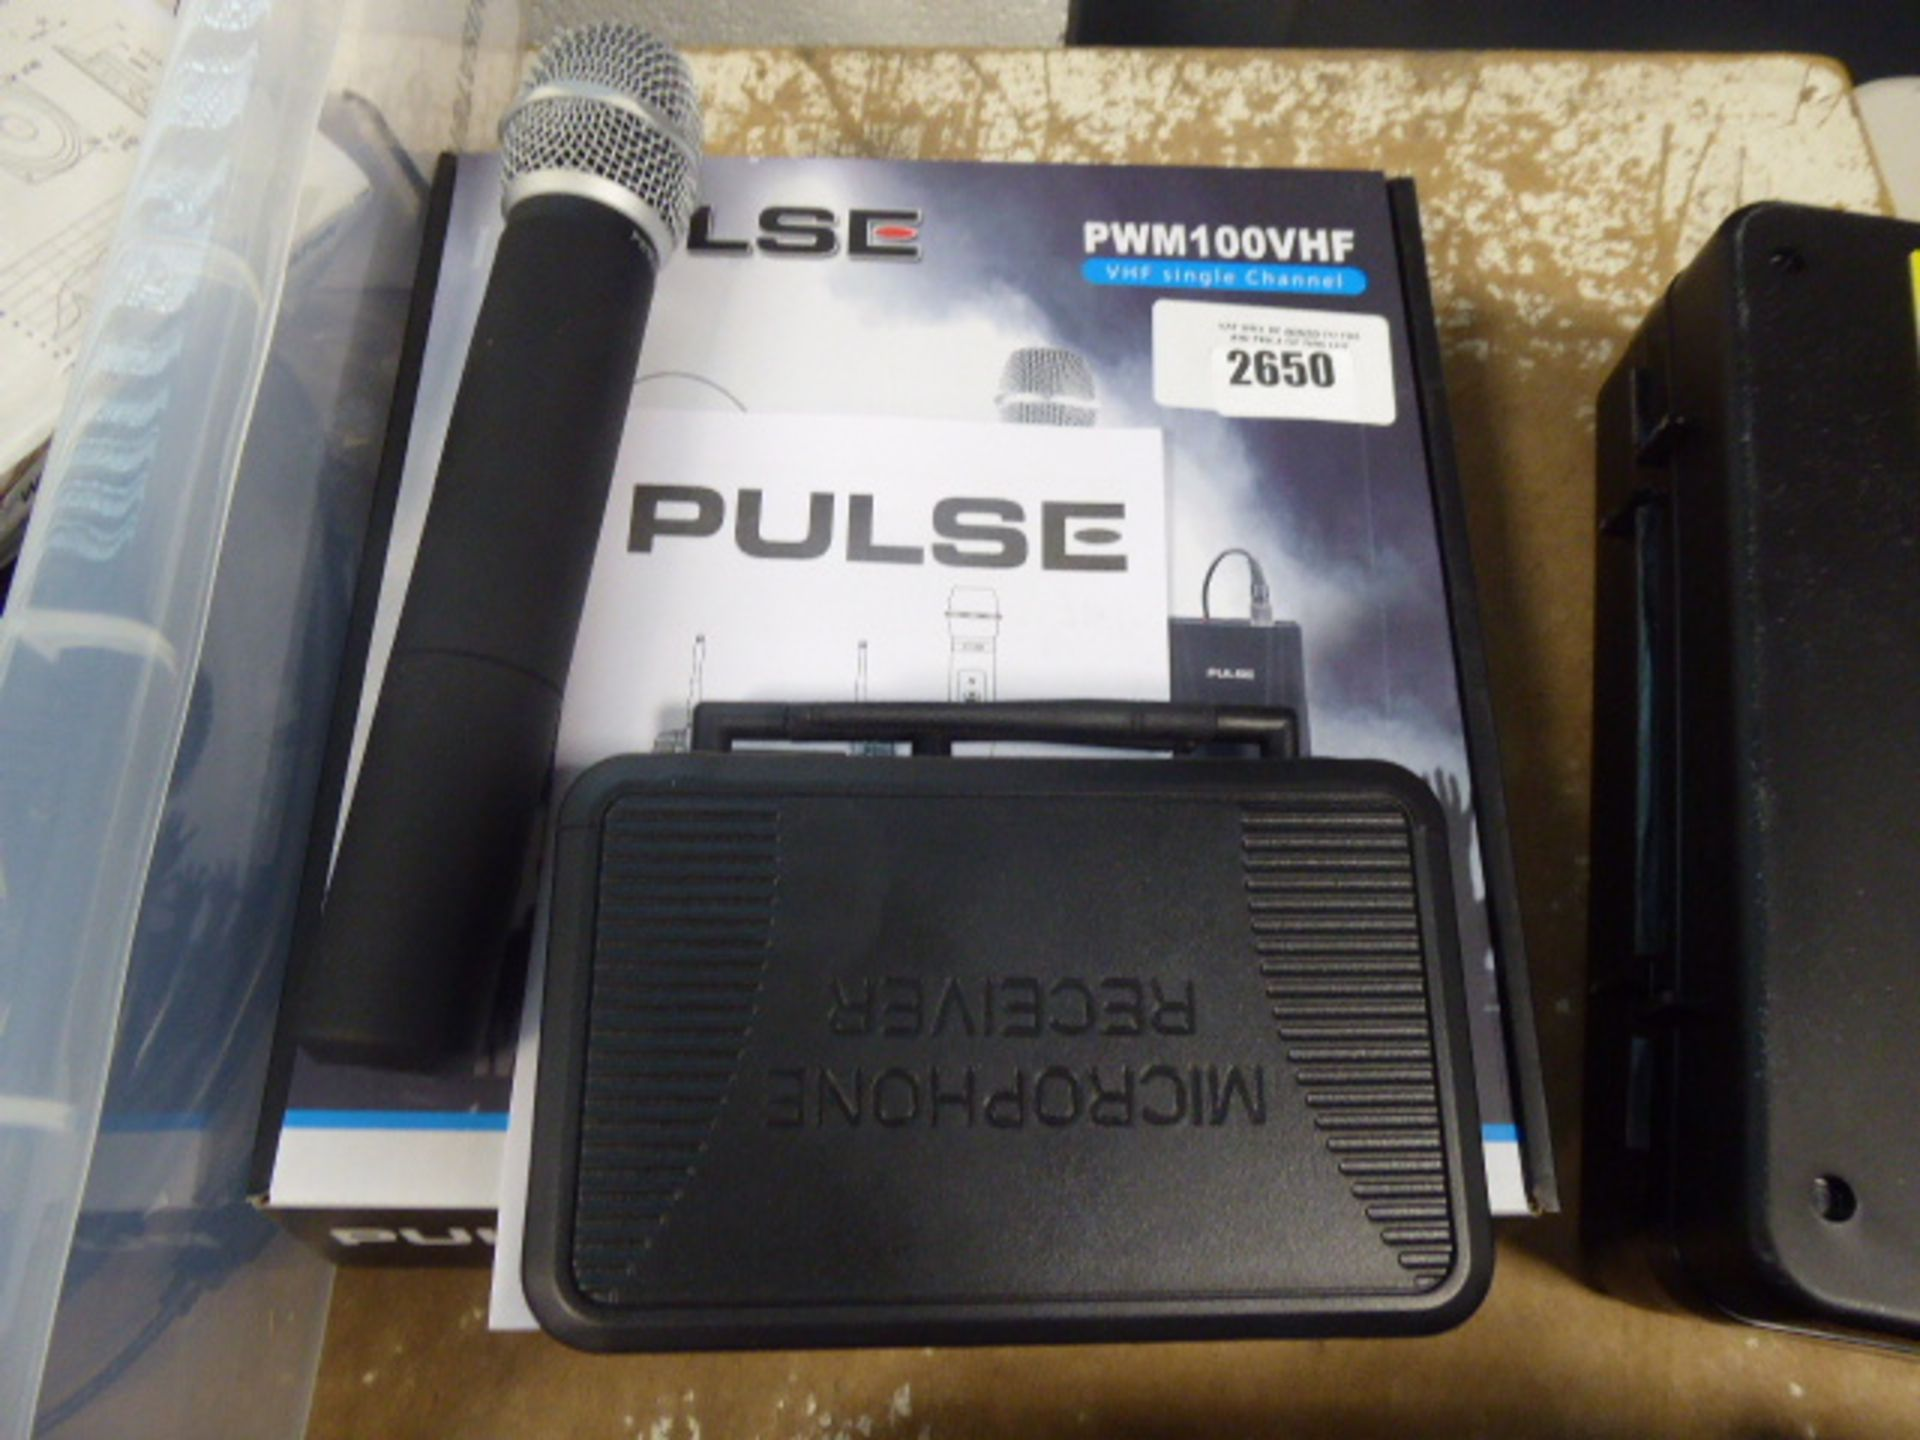 Pulse PWM100 VHF single channel receiver and microphone with box